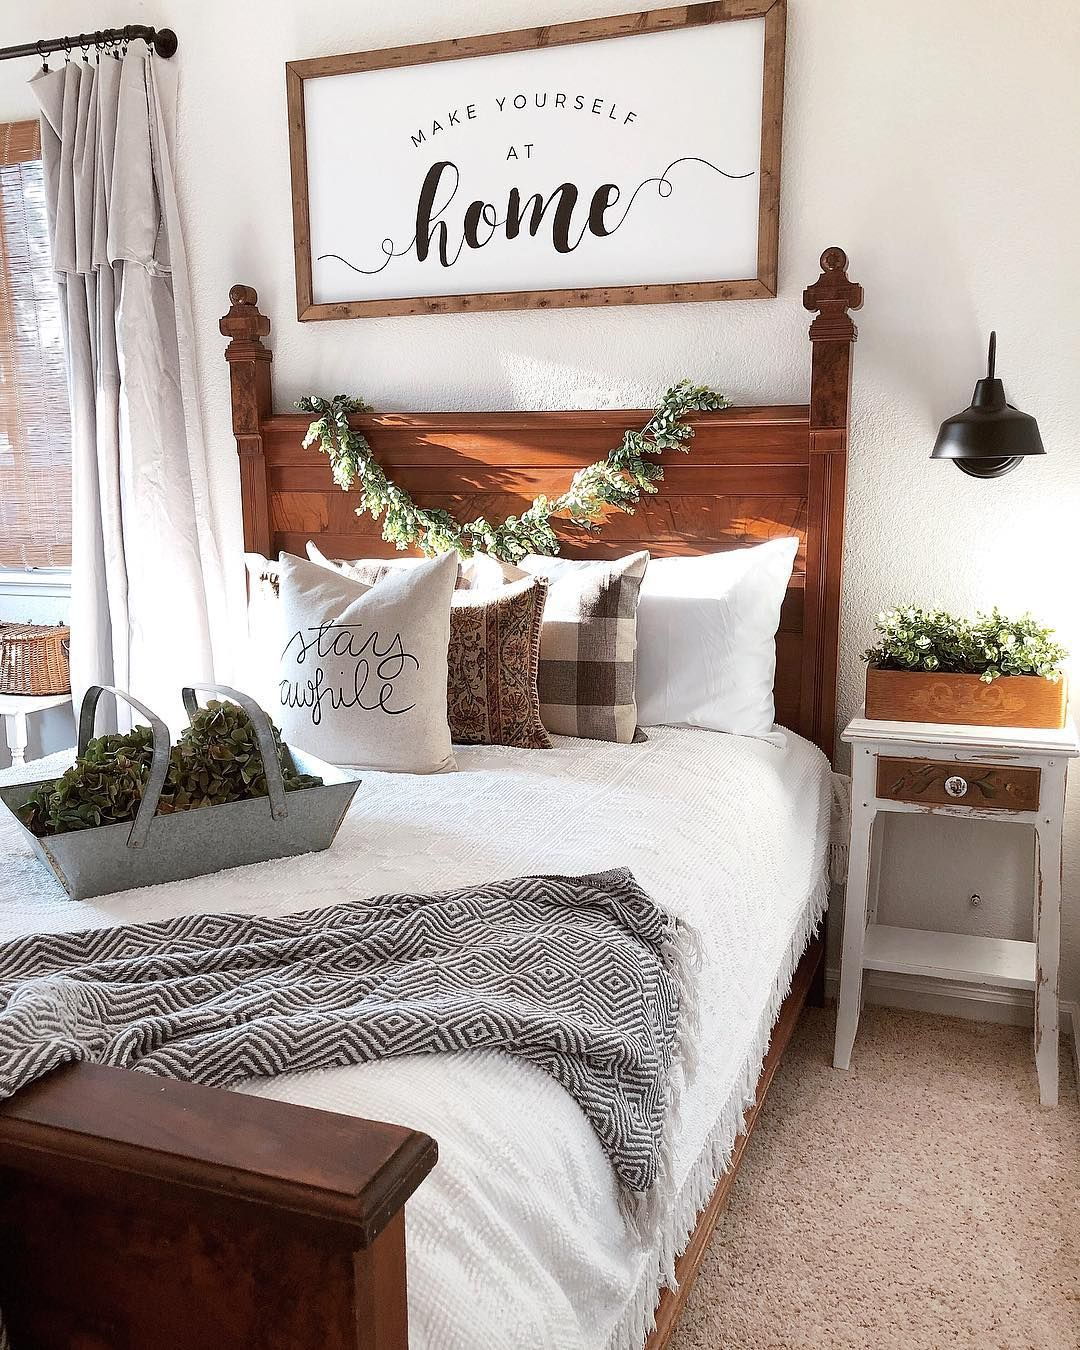 Farmhouse Guestroom decor with old fashioned wood bed